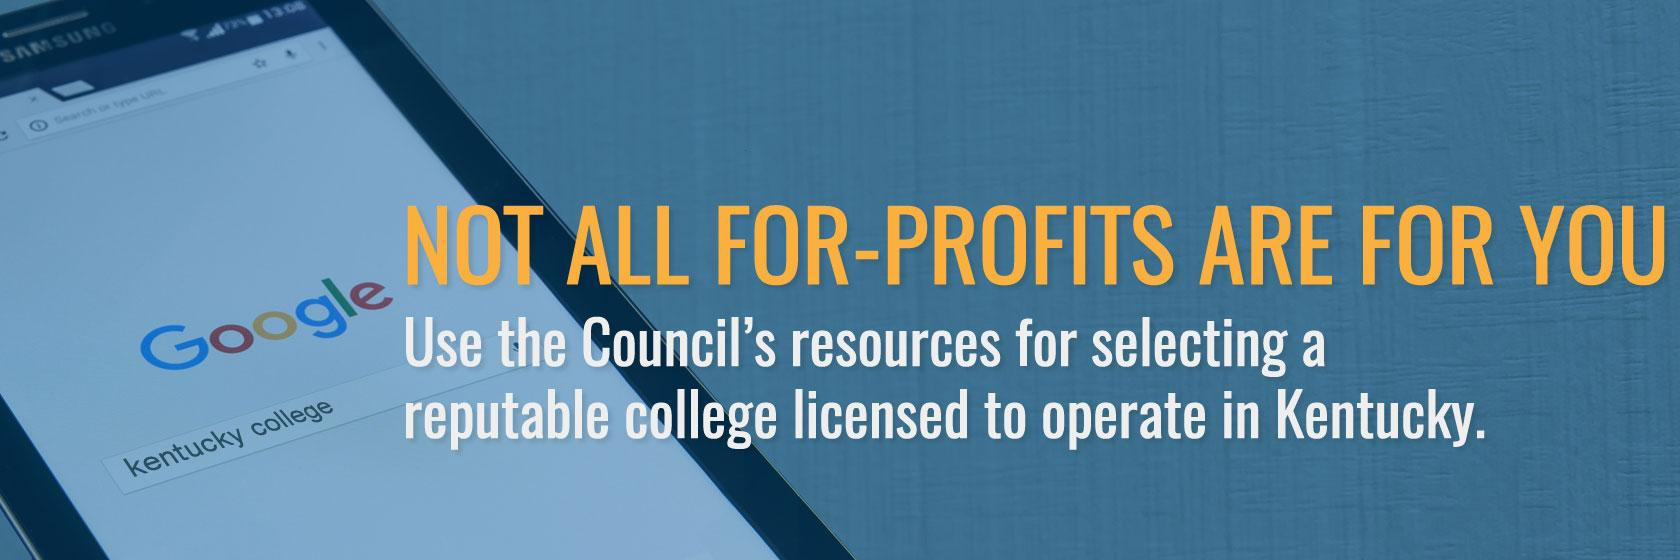 Use the Council's resources for selecting a 